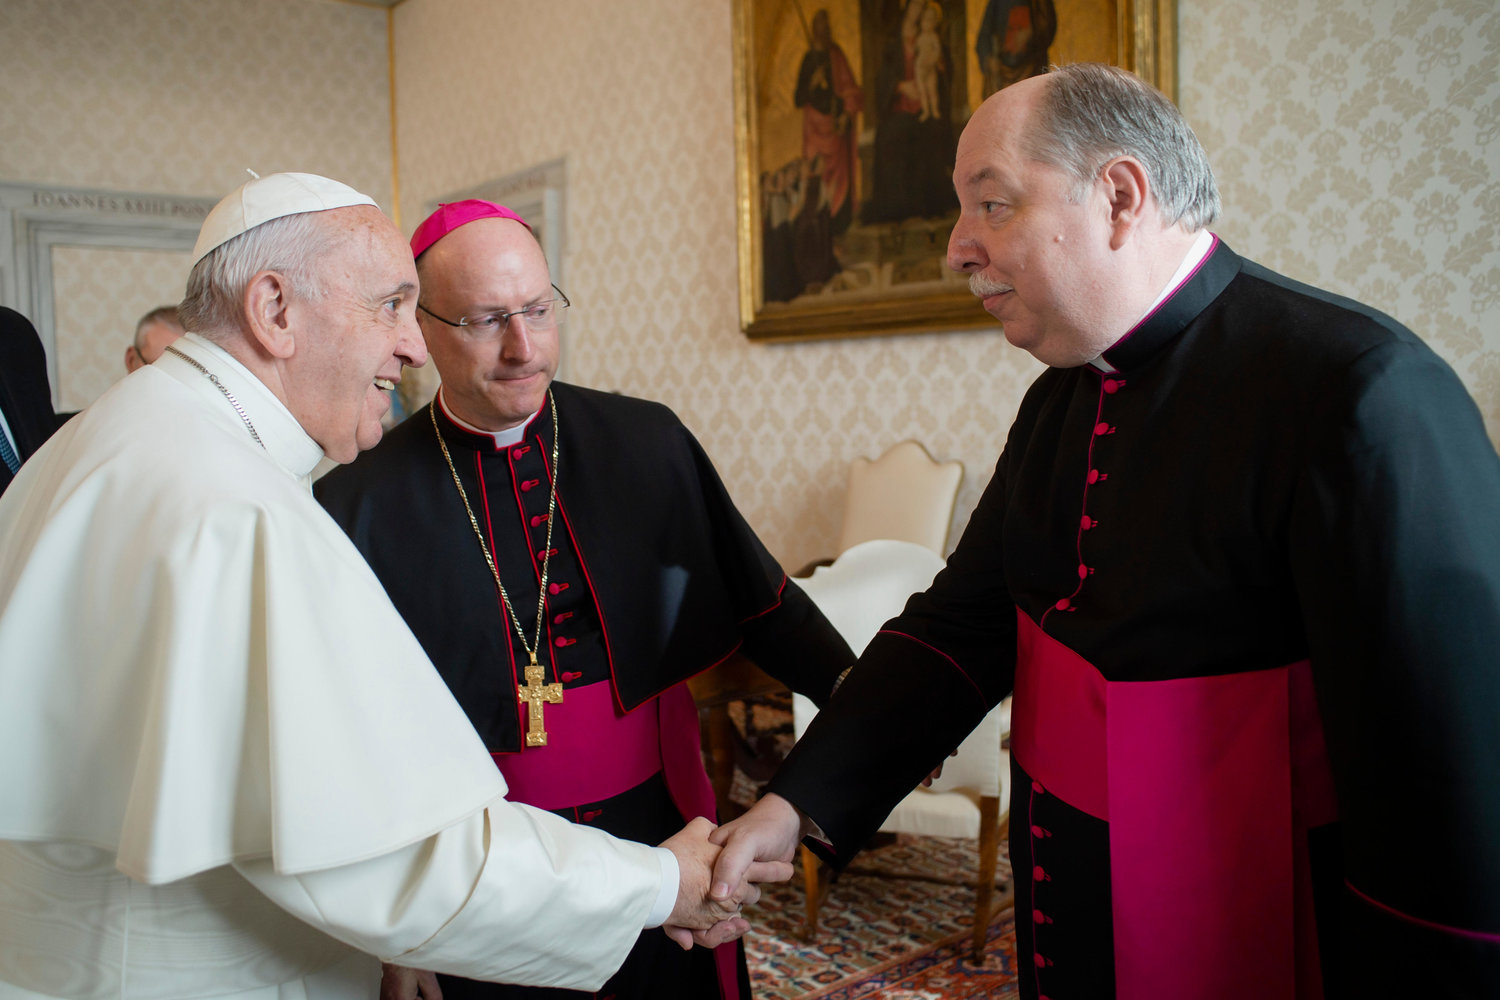 "Pope Francis greets Monsignor Robert A. Kurwicki, vicar general for the Diocese of Jefferson City, Mo., as he meets with U.S. bishops from Iowa, Kansas, Missouri and Nebraska during their ""ad limina"" visits to the Vatican Jan. 16, 2020. The bishops were making their ""ad limina"" visits to report on the status of their dioceses to the Pope and Vatican officials."